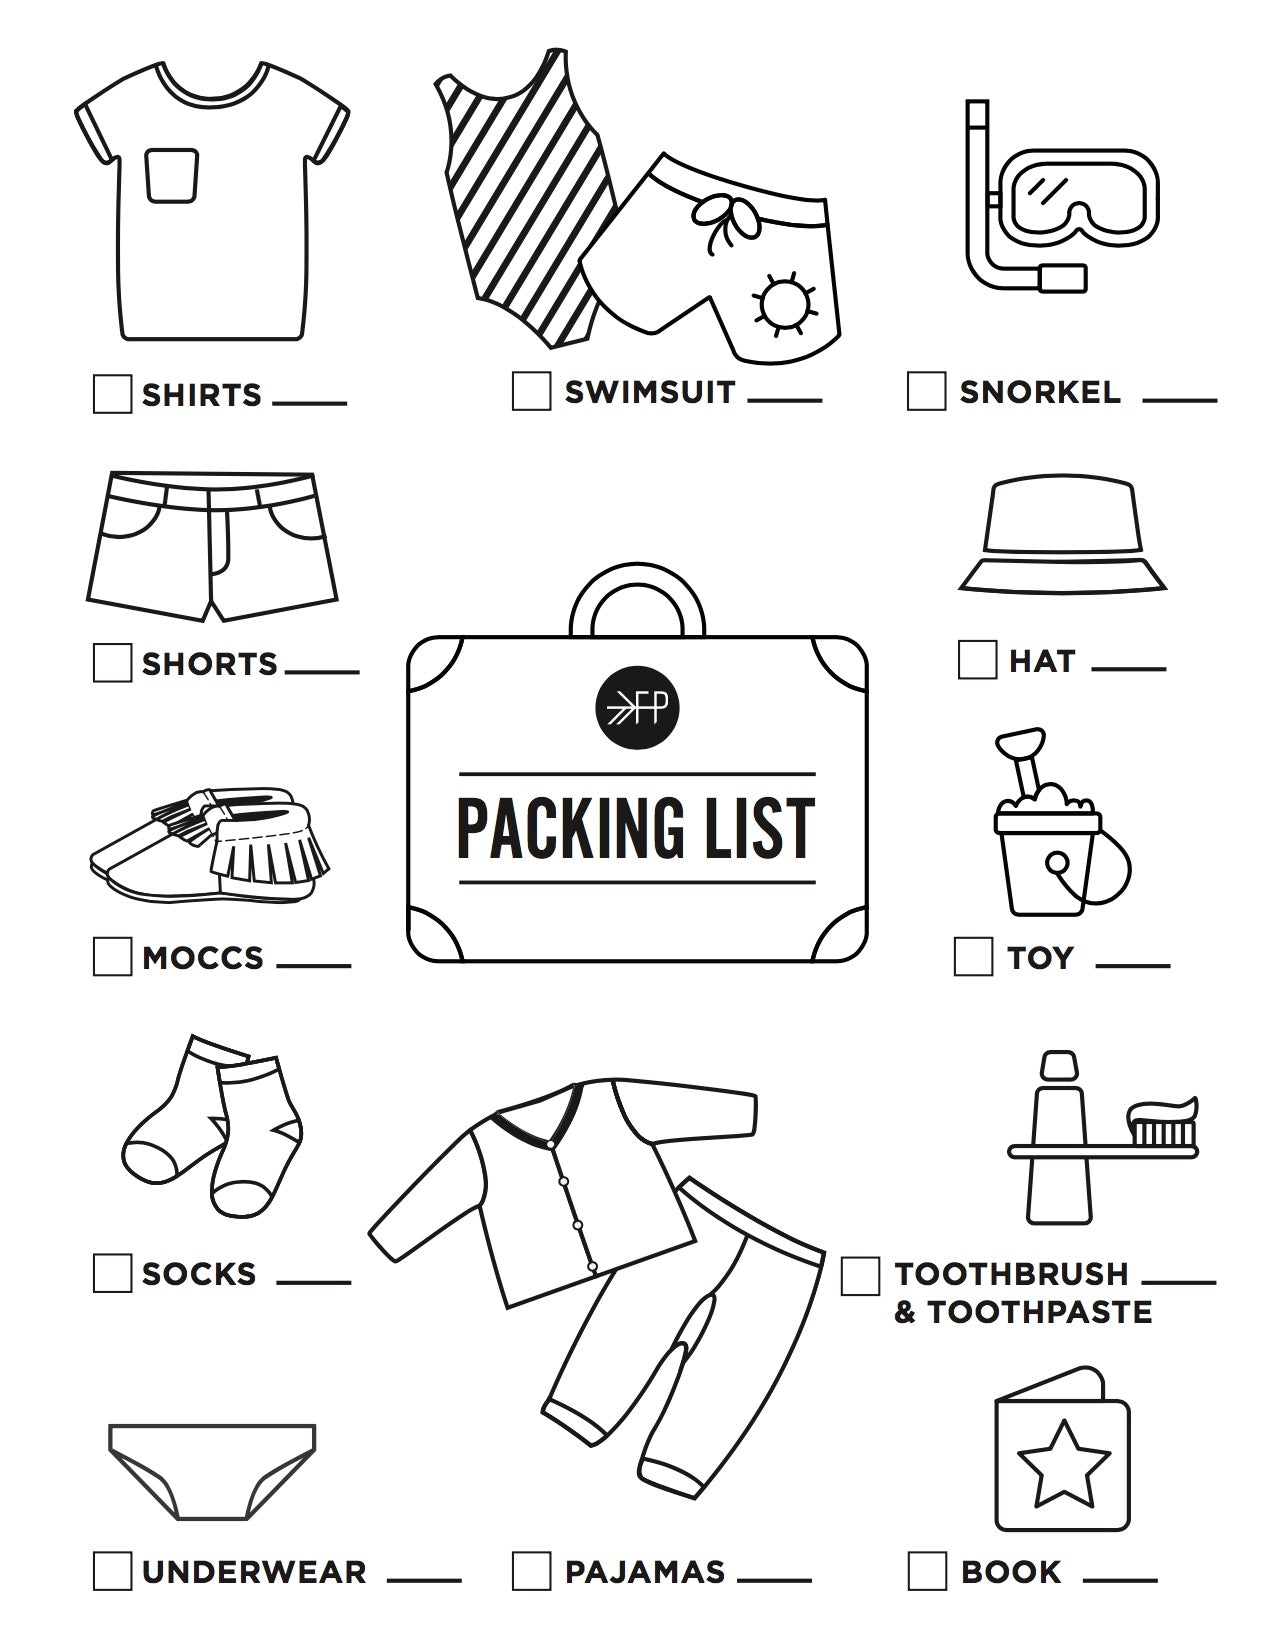 Packing List Printable